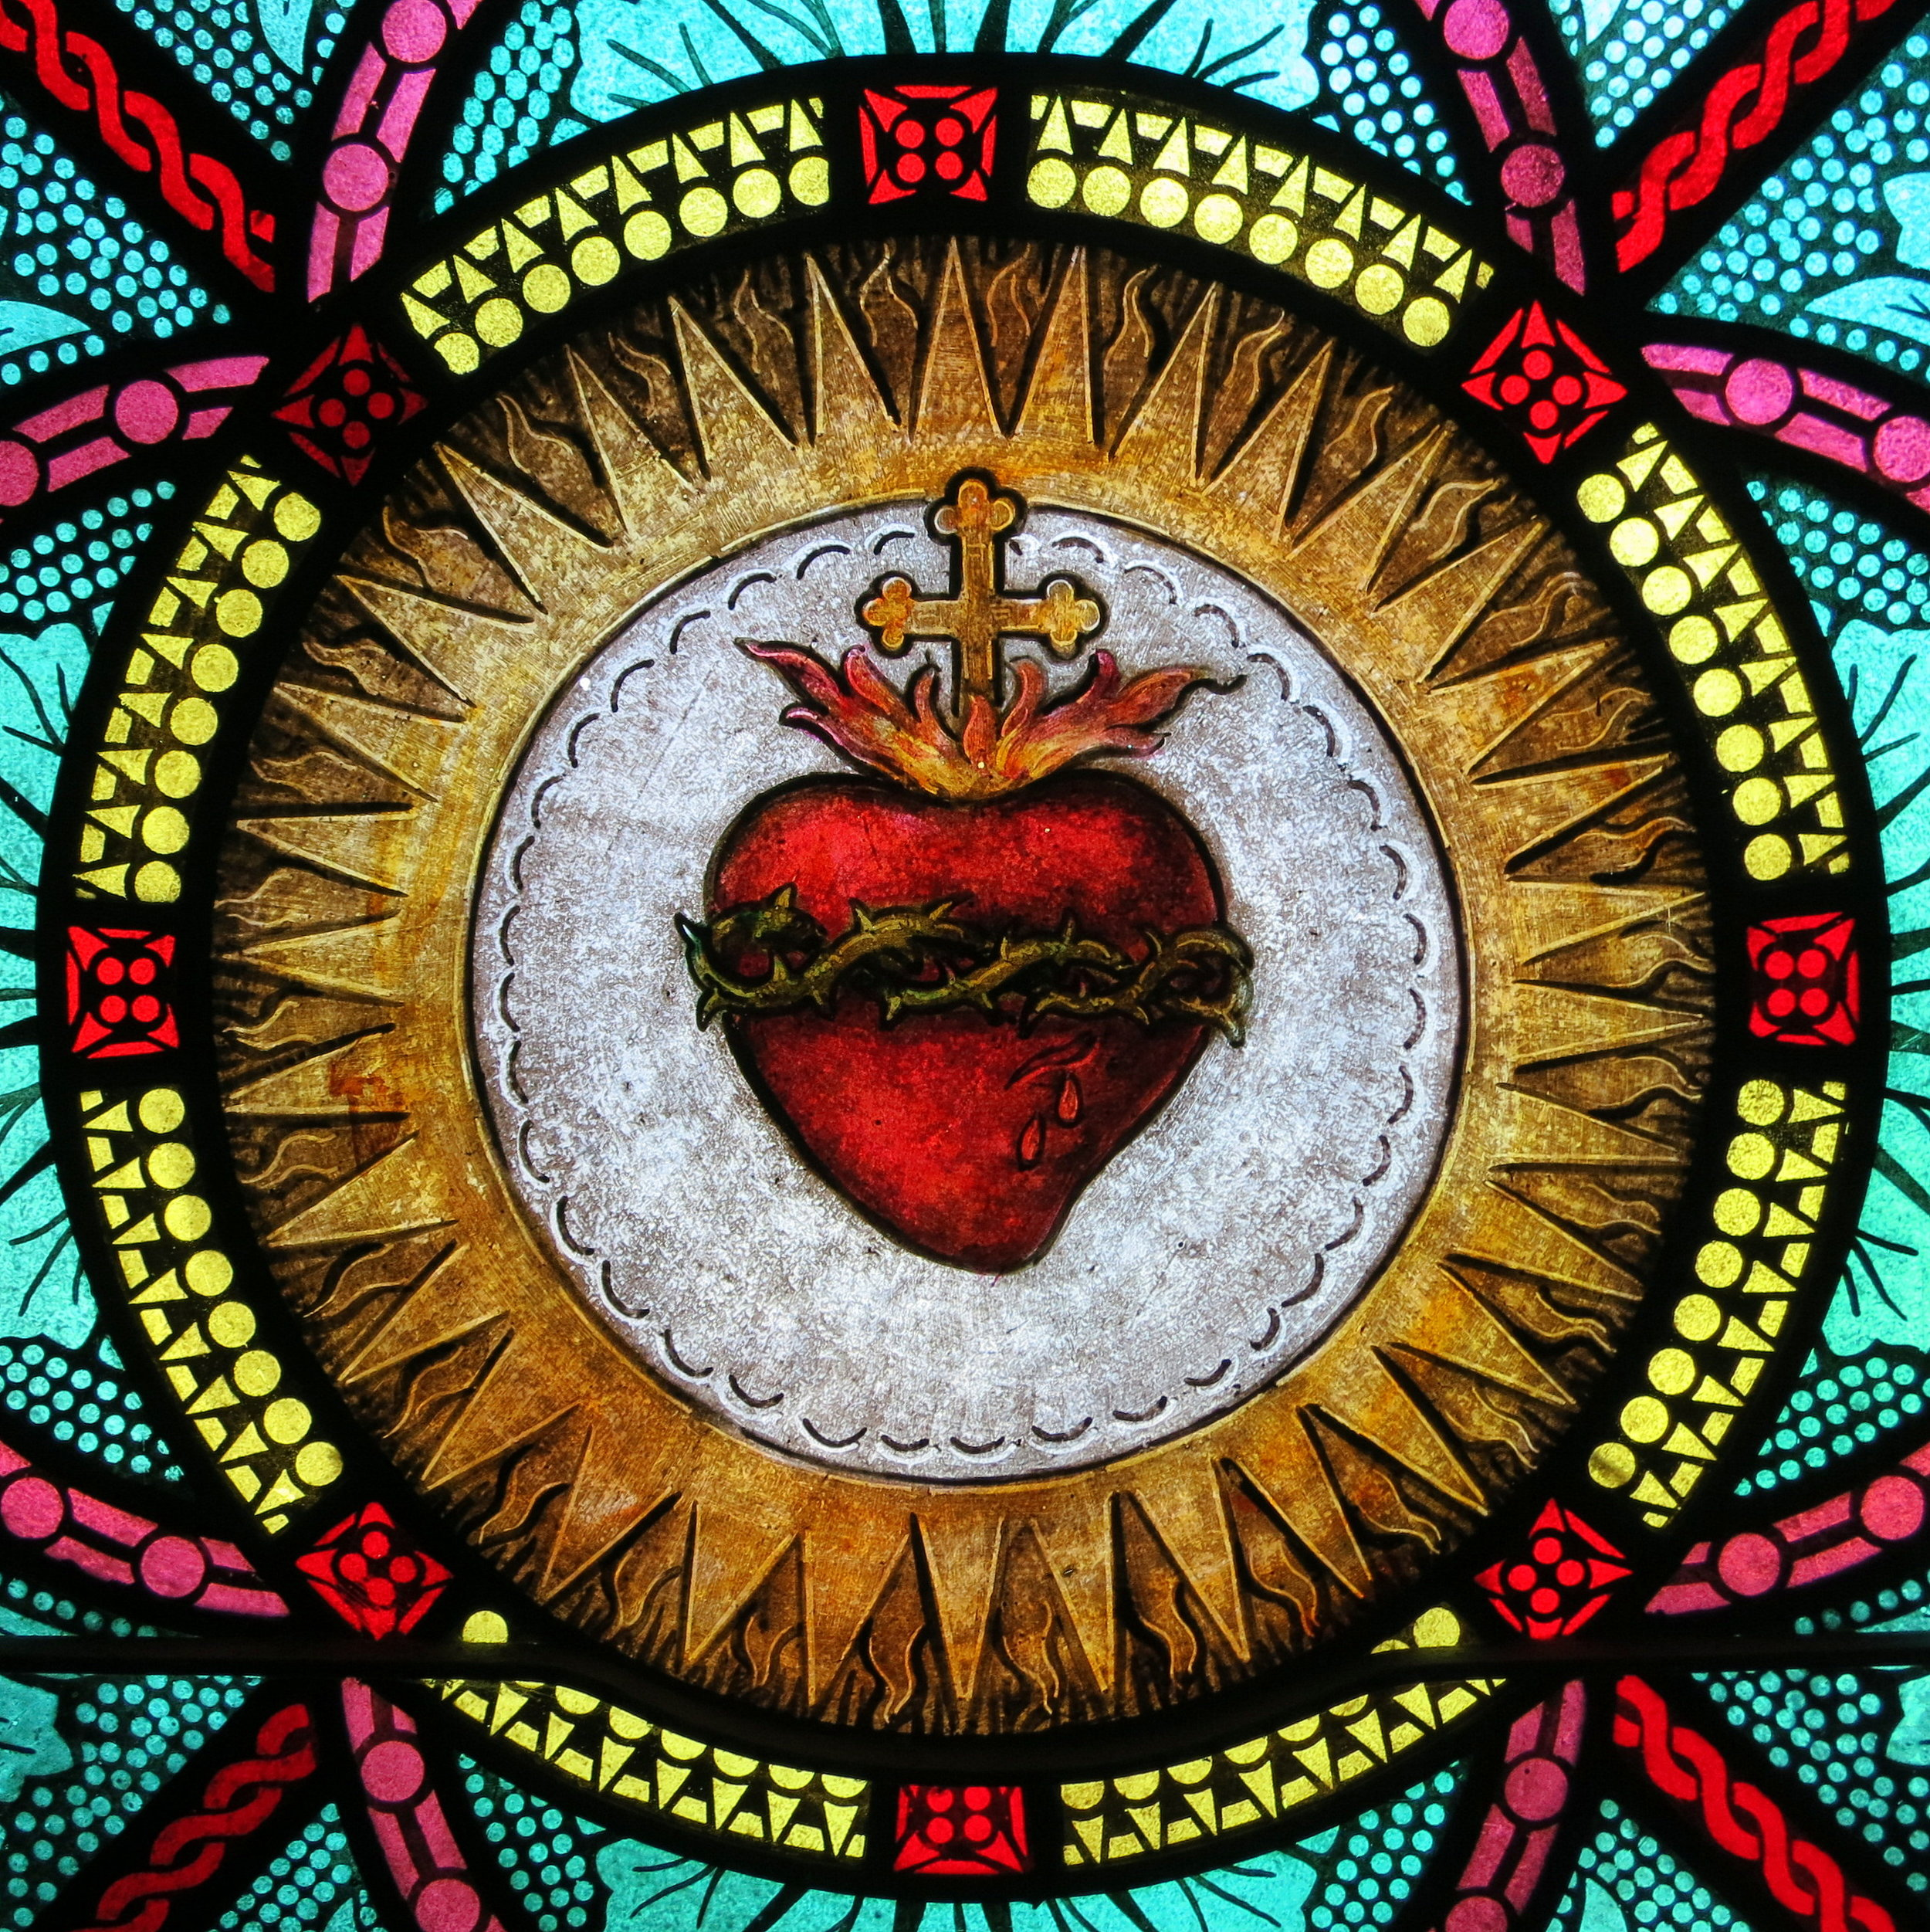 sacred-heart-stained-glass.jpg